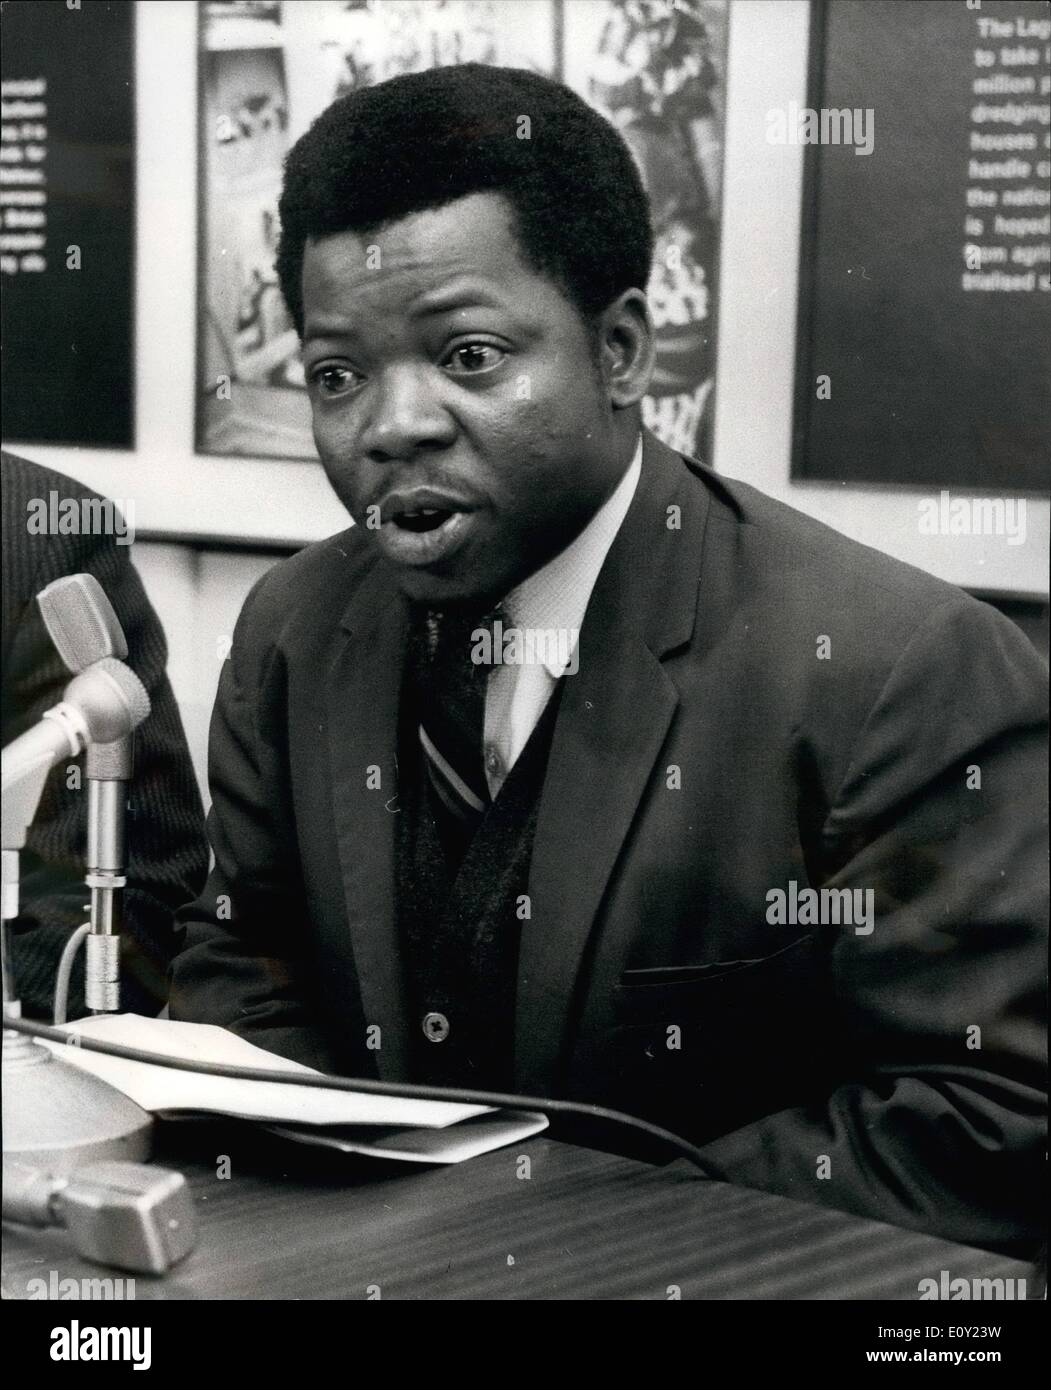 Jun. 06, 1968 - First IBO civilian administrator of the Fast central state of Nigeria strongly denies allegation of mass elimination of IBOS preferred against the Federal Military government of Nigeria; Mr. Anthony Ckpabi Asika, 31, an IBO of Onistshe origin, is the first Ibo civilian to be appointed Civil Administratio for the East Central State in the new Nigerian set up. At a Press Conference at Nigerial House yesterday Mr - Stock Image